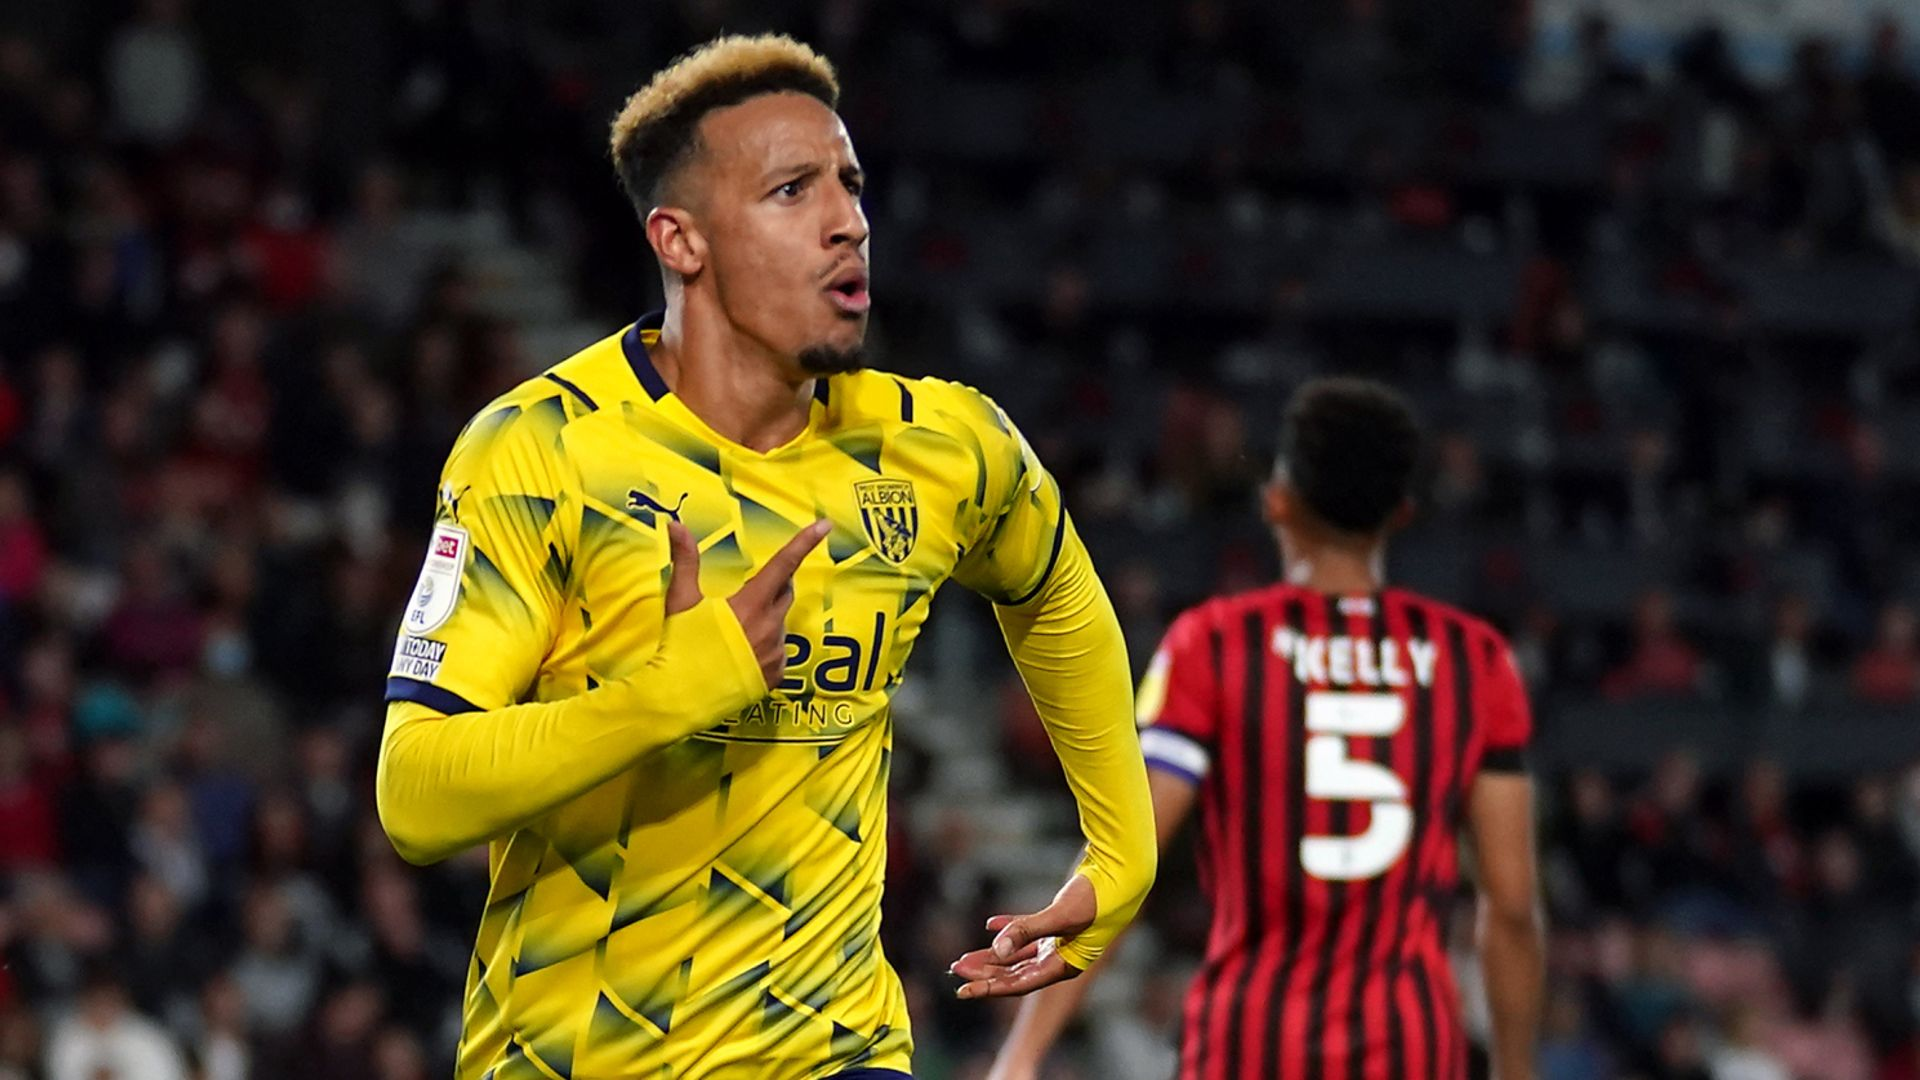 West Brom hold Bournemouth in pulsating Championship opener